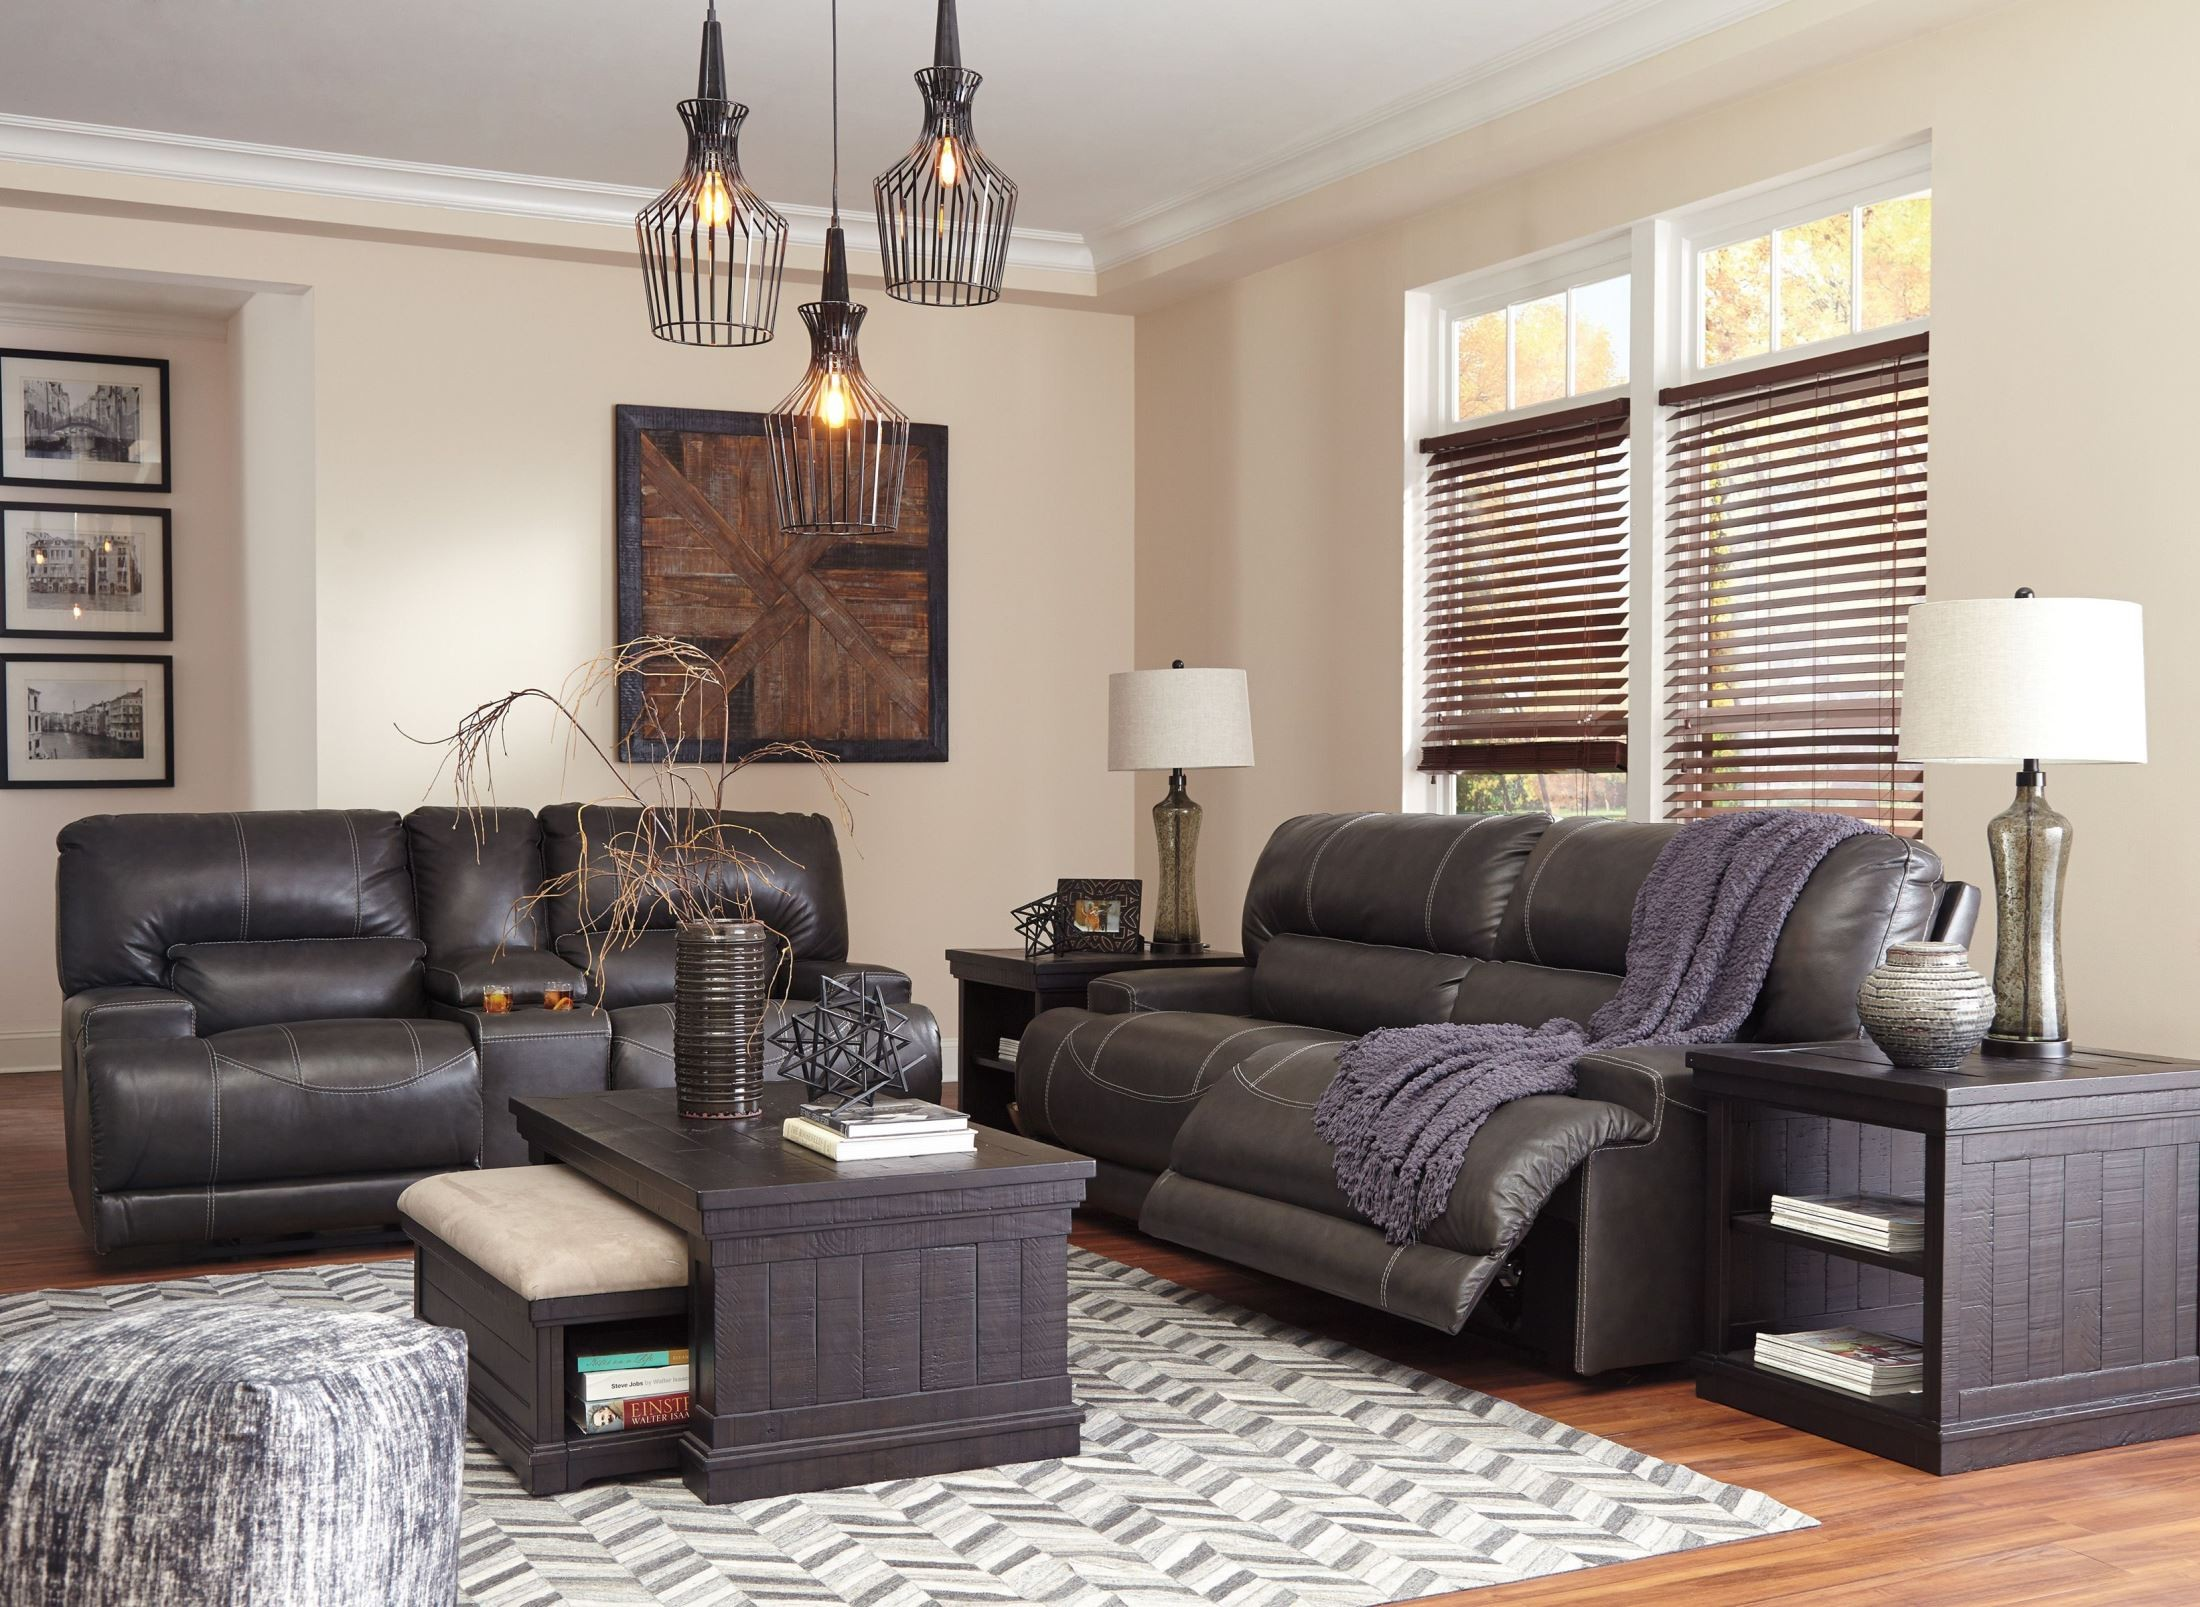 McCaskill Gray 2 Seat Power Reclining Sofa From Ashley | Coleman Furniture